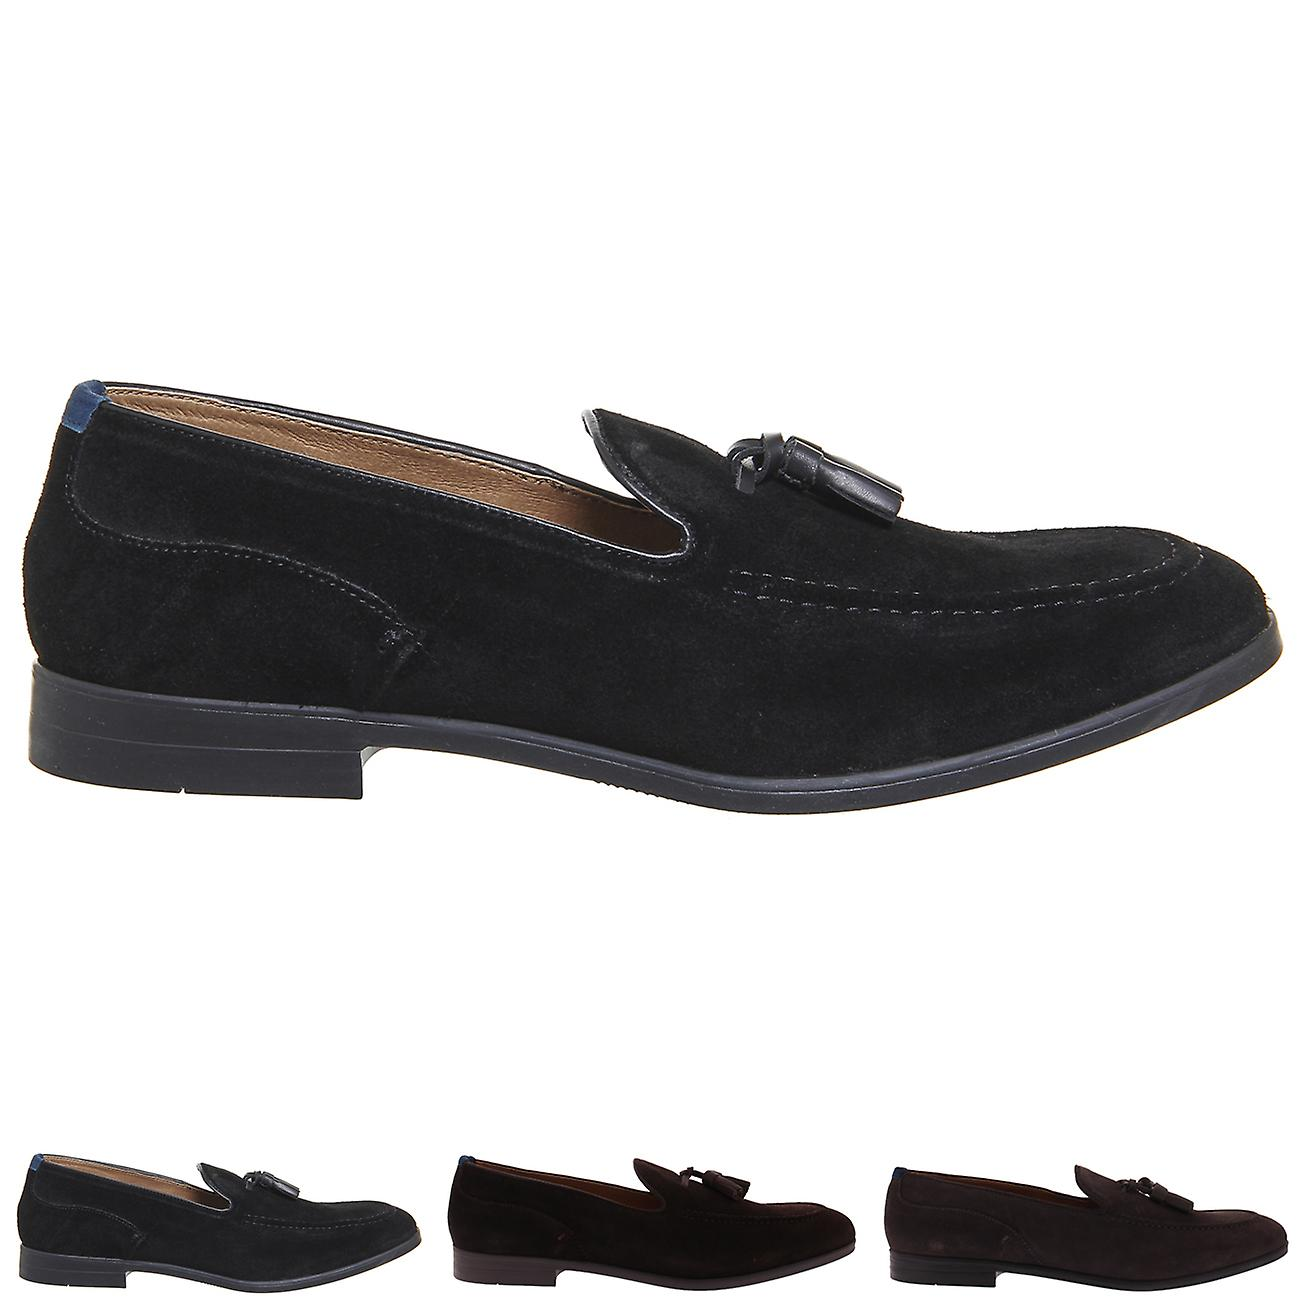 s H Suede By Hudson Aylsham Crafted Suede H Work Smart Office Loafers Shoes 6520a4